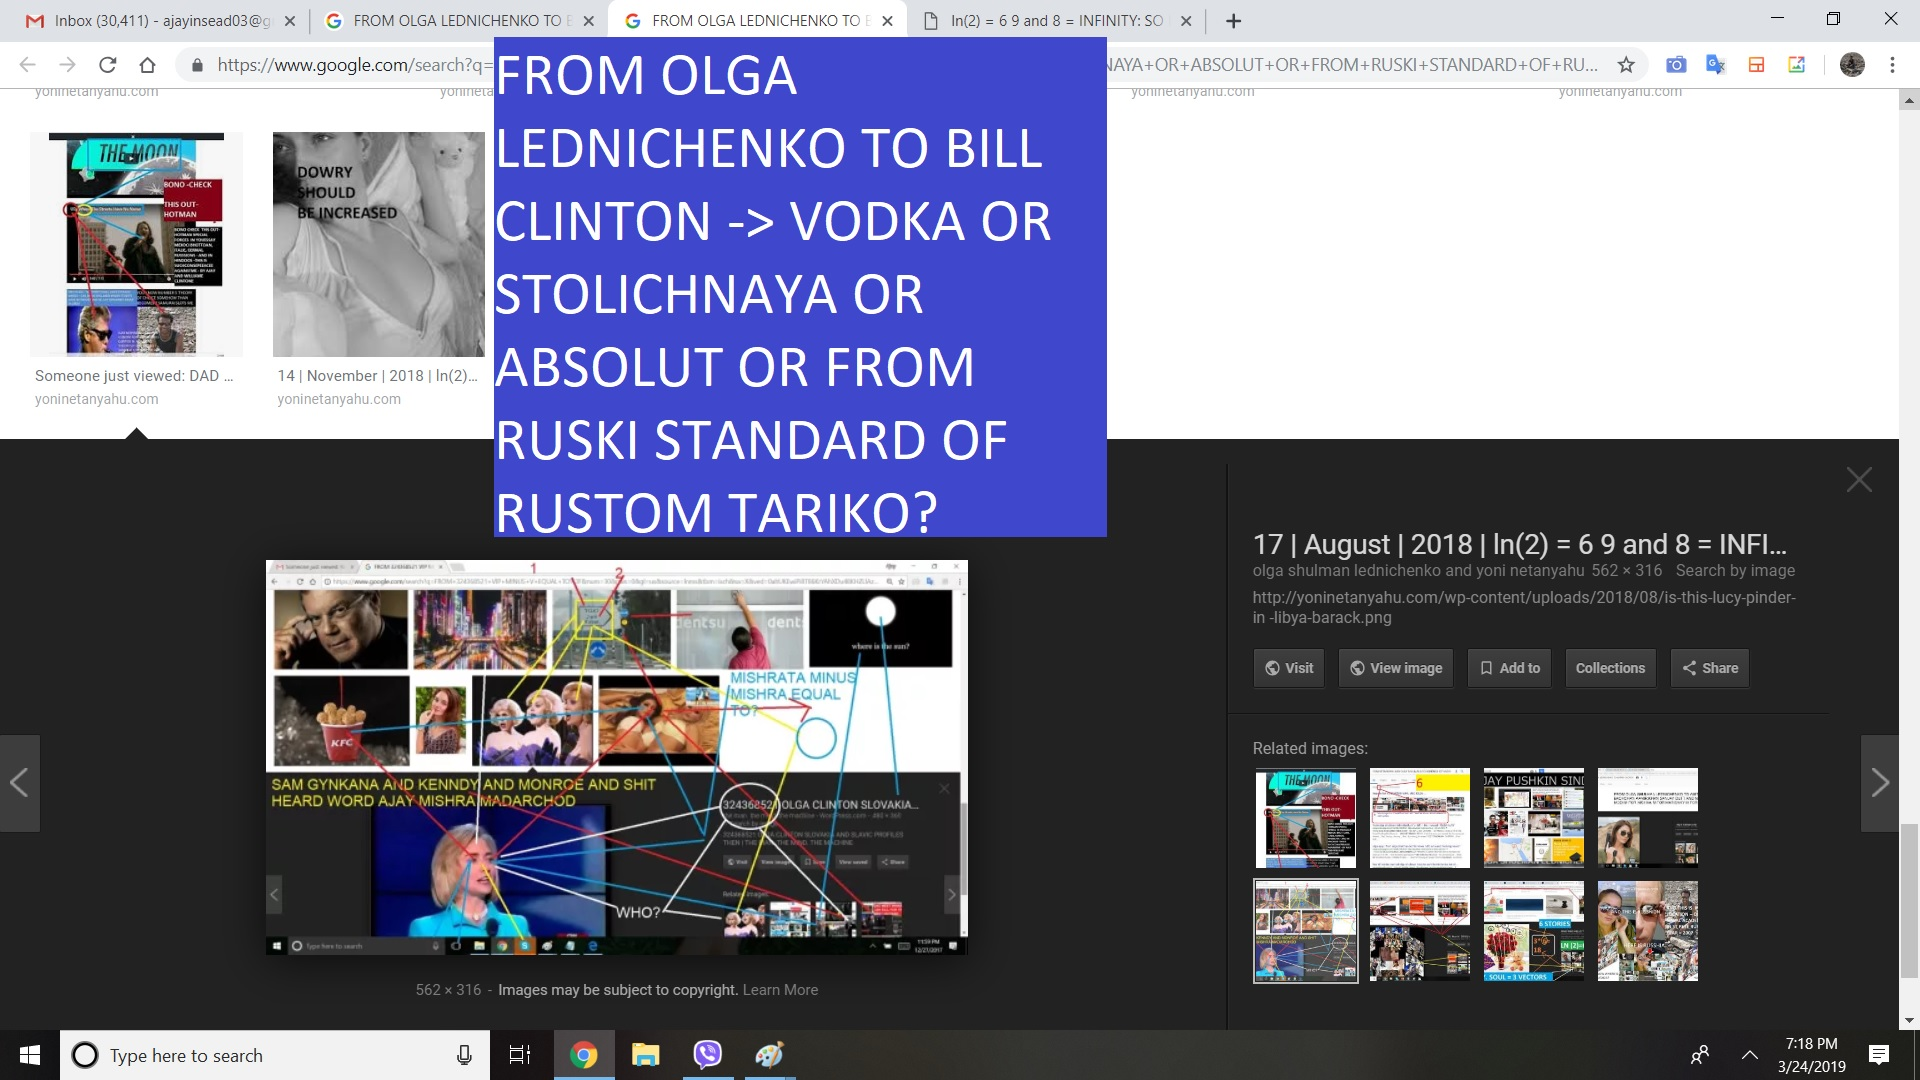 FROM OLGA LEDNICHENKO TO BILL CLINTON VODKA OR STOLICHNAYA OR ABSOLUT OR FROM RUSKI STANDARD OF RUSTOM TARIKO